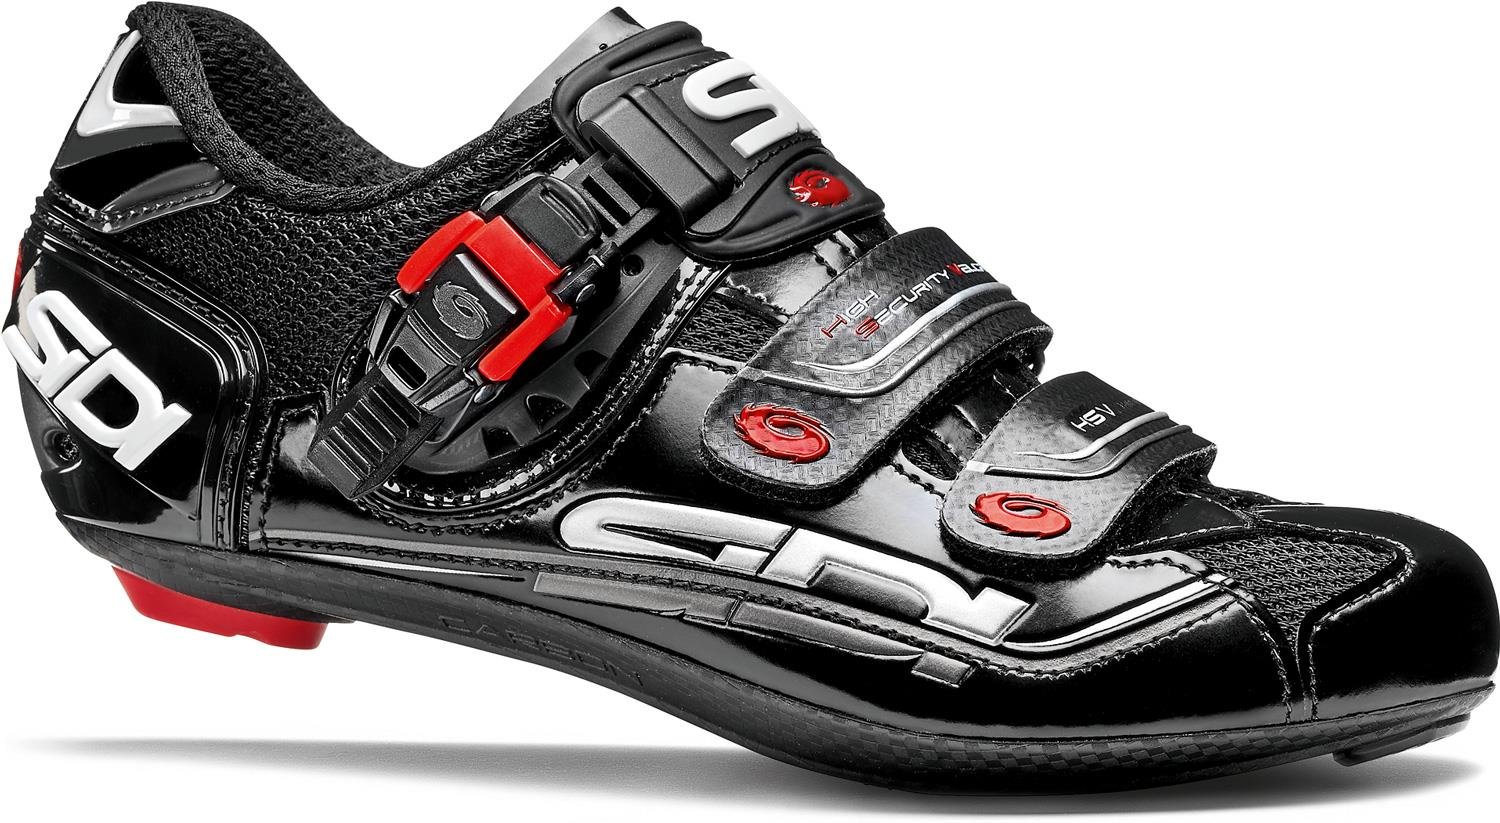 Sidi Genius 7 Carbon Cycling Shoe - Men's Black, 41.5 by Sidi